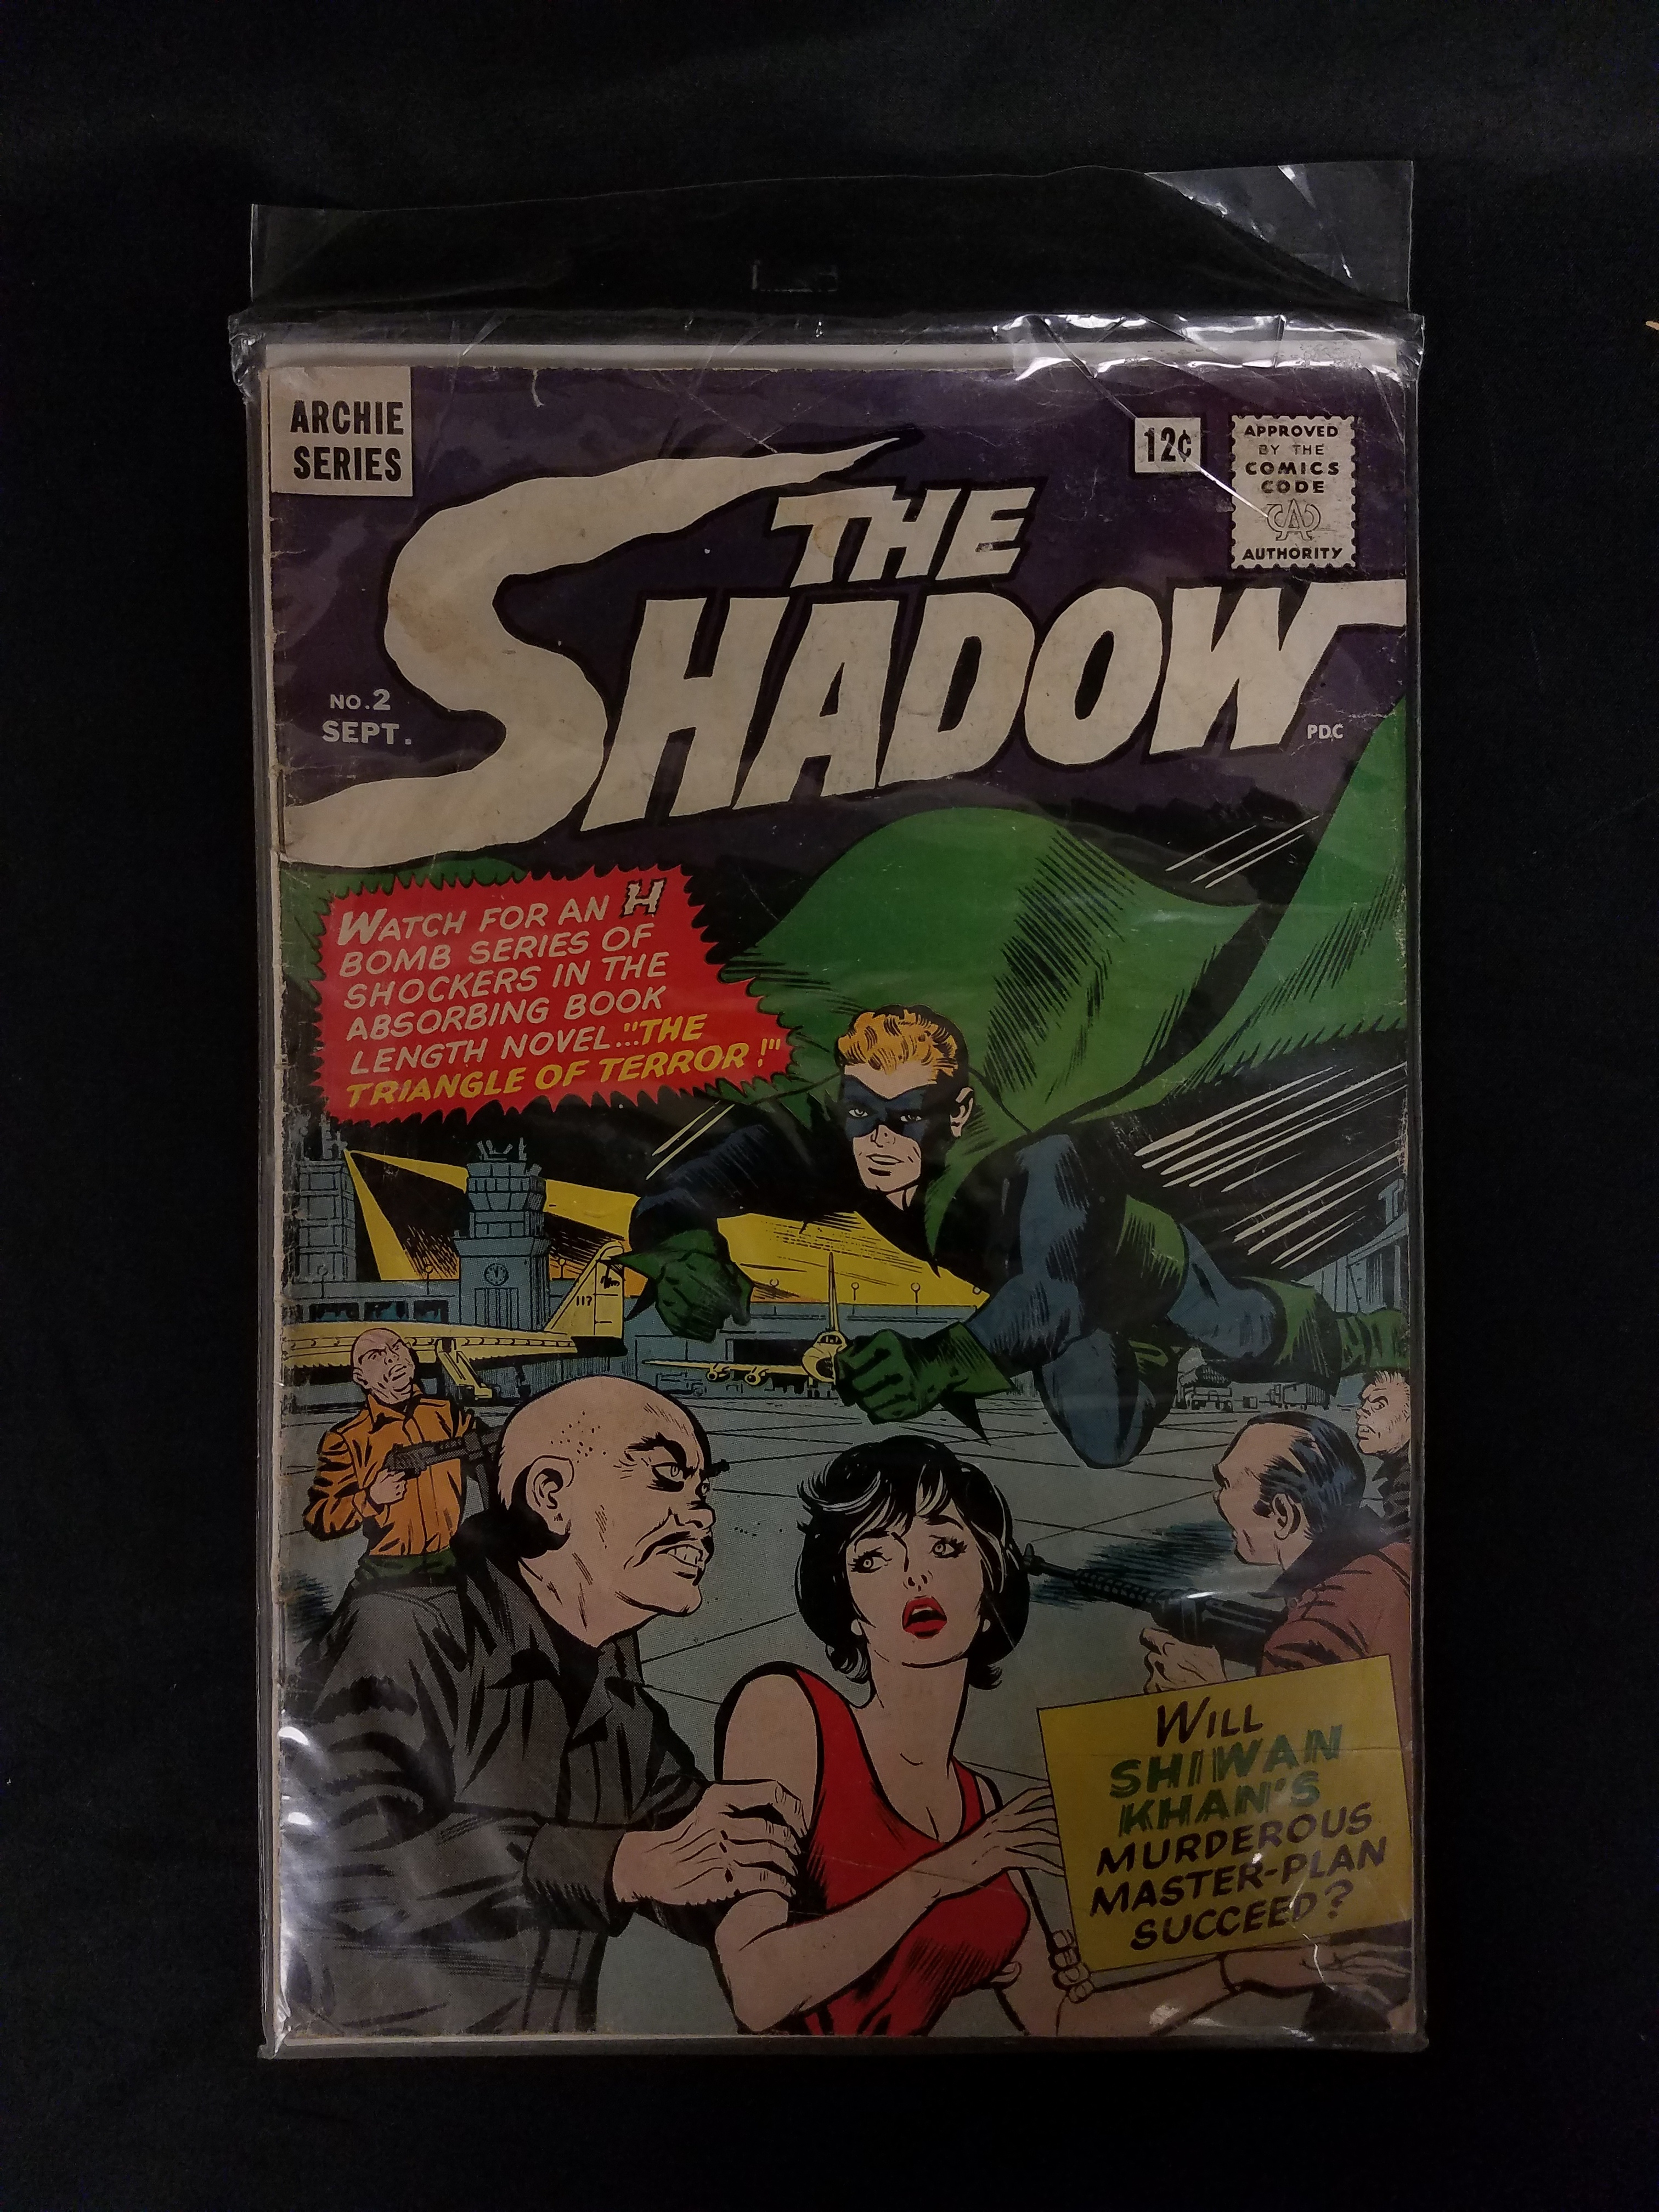 COLLECTIBLE COMIC BOOK: ARCHIE SERIES- THE SHADOW NO. 2 SEPT